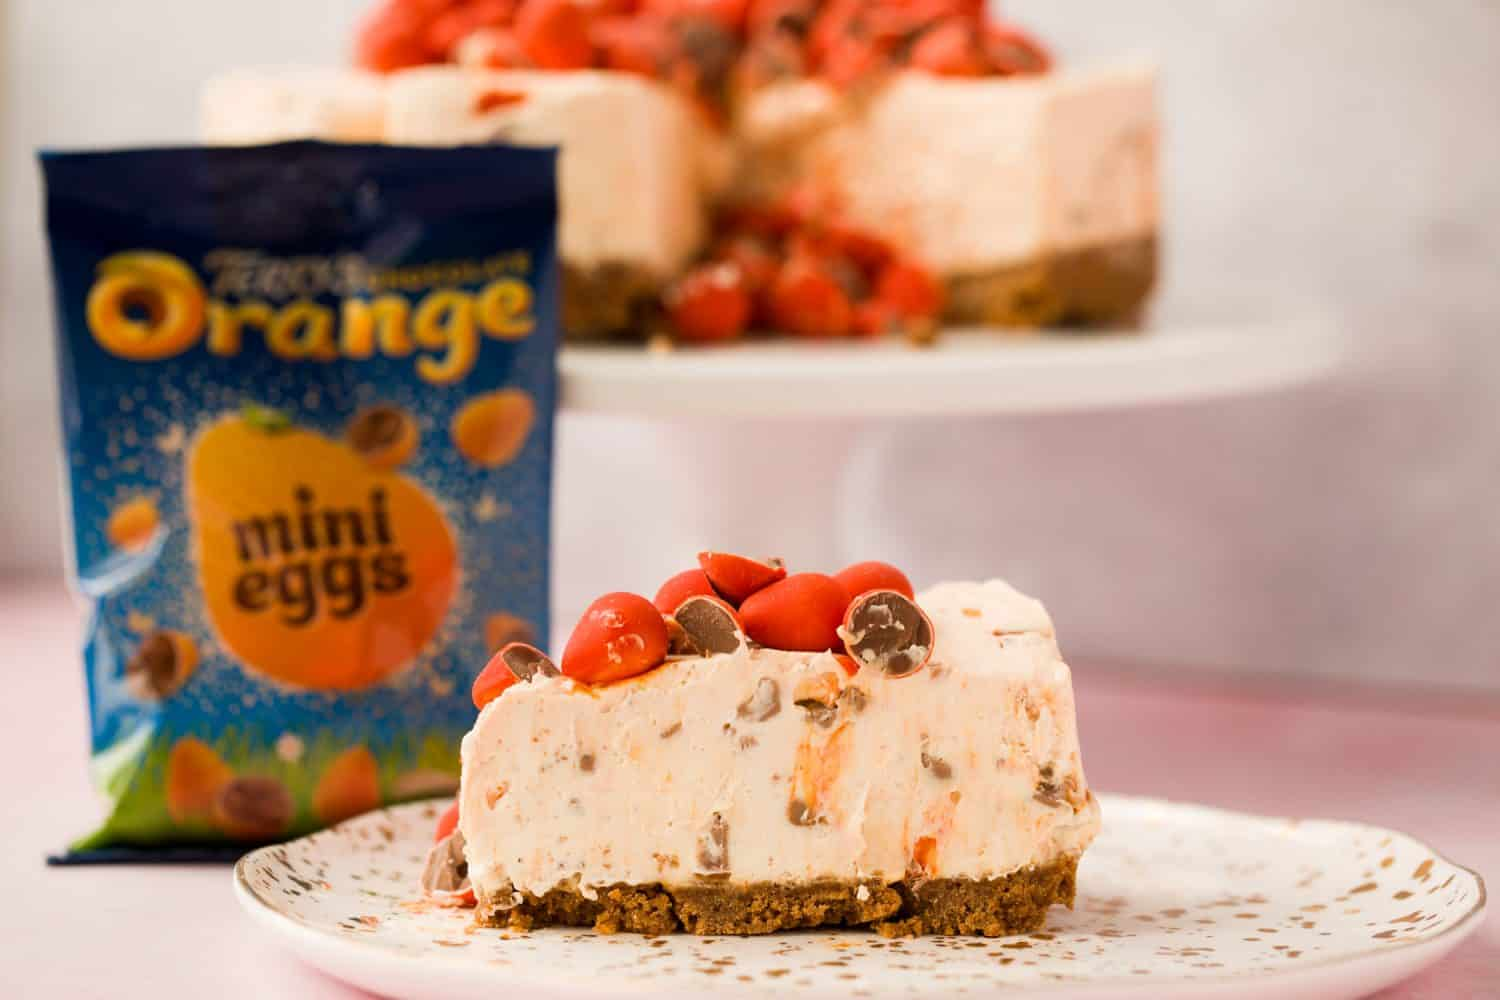 In the foreground a slice of cheesecake topped with orange mini eggs, beside the cake is a bag of Terry's mini eggs.